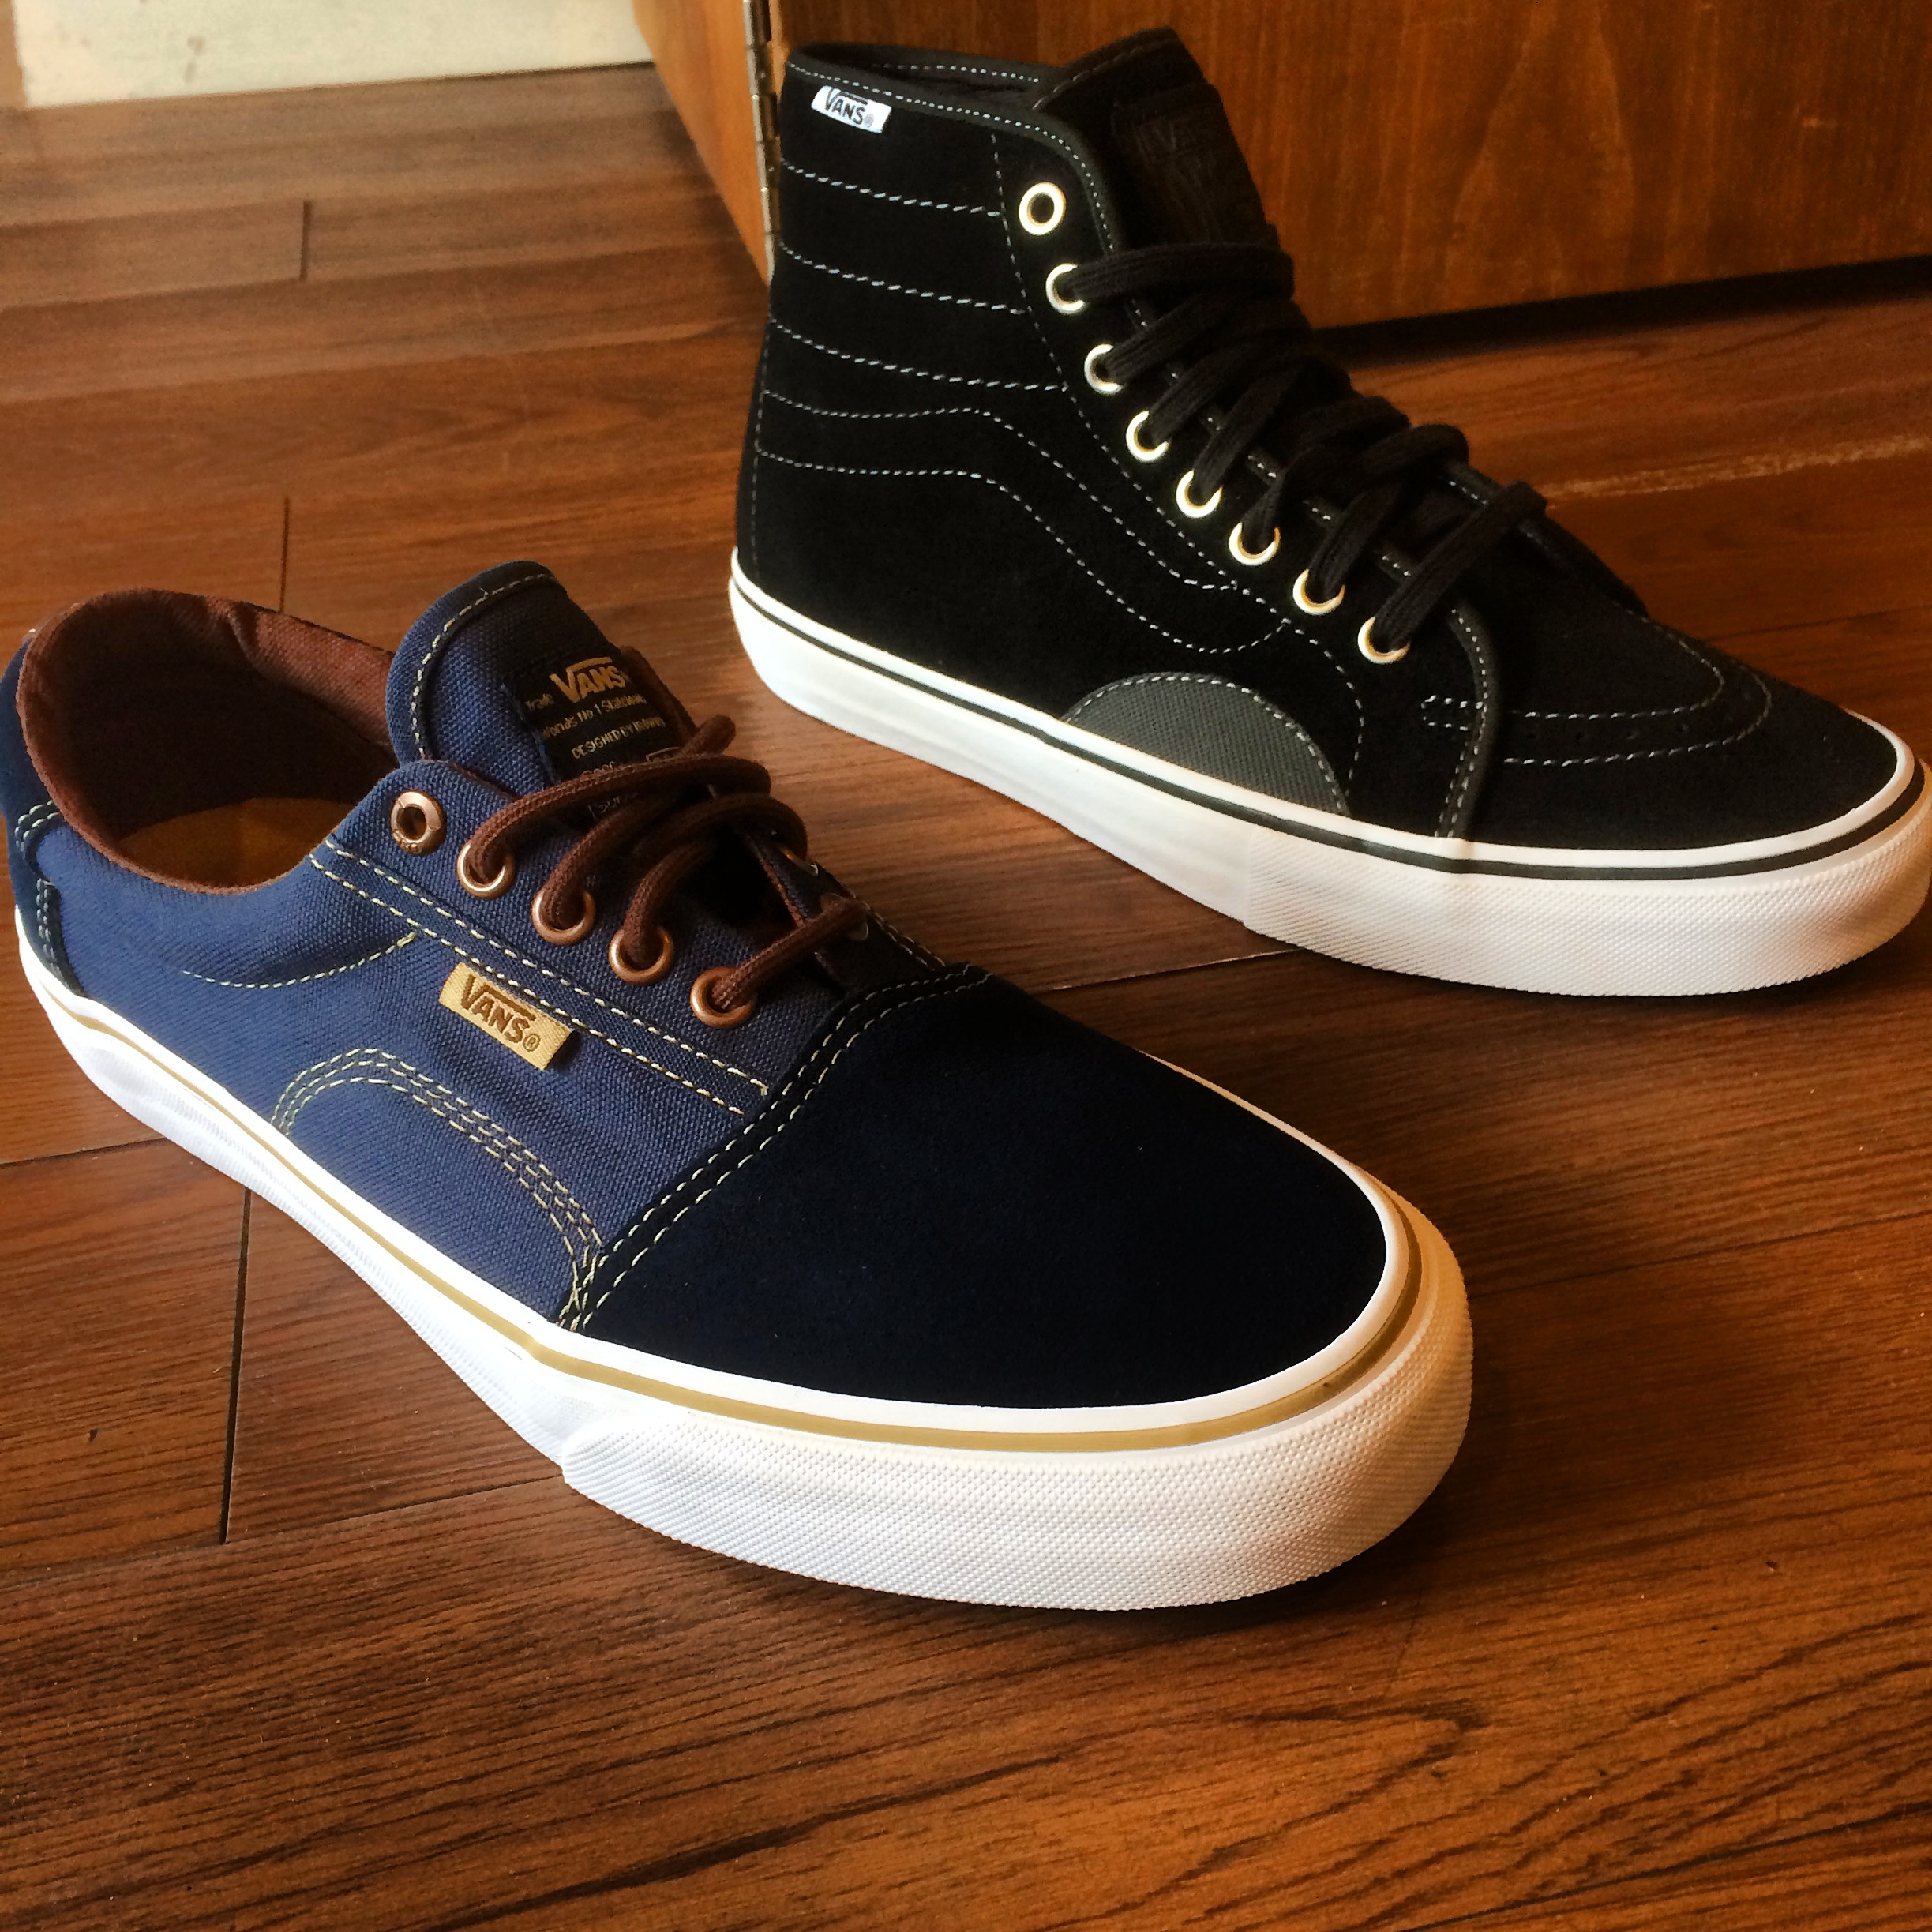 89effab63752cc Tons Of New Shoes From Vans